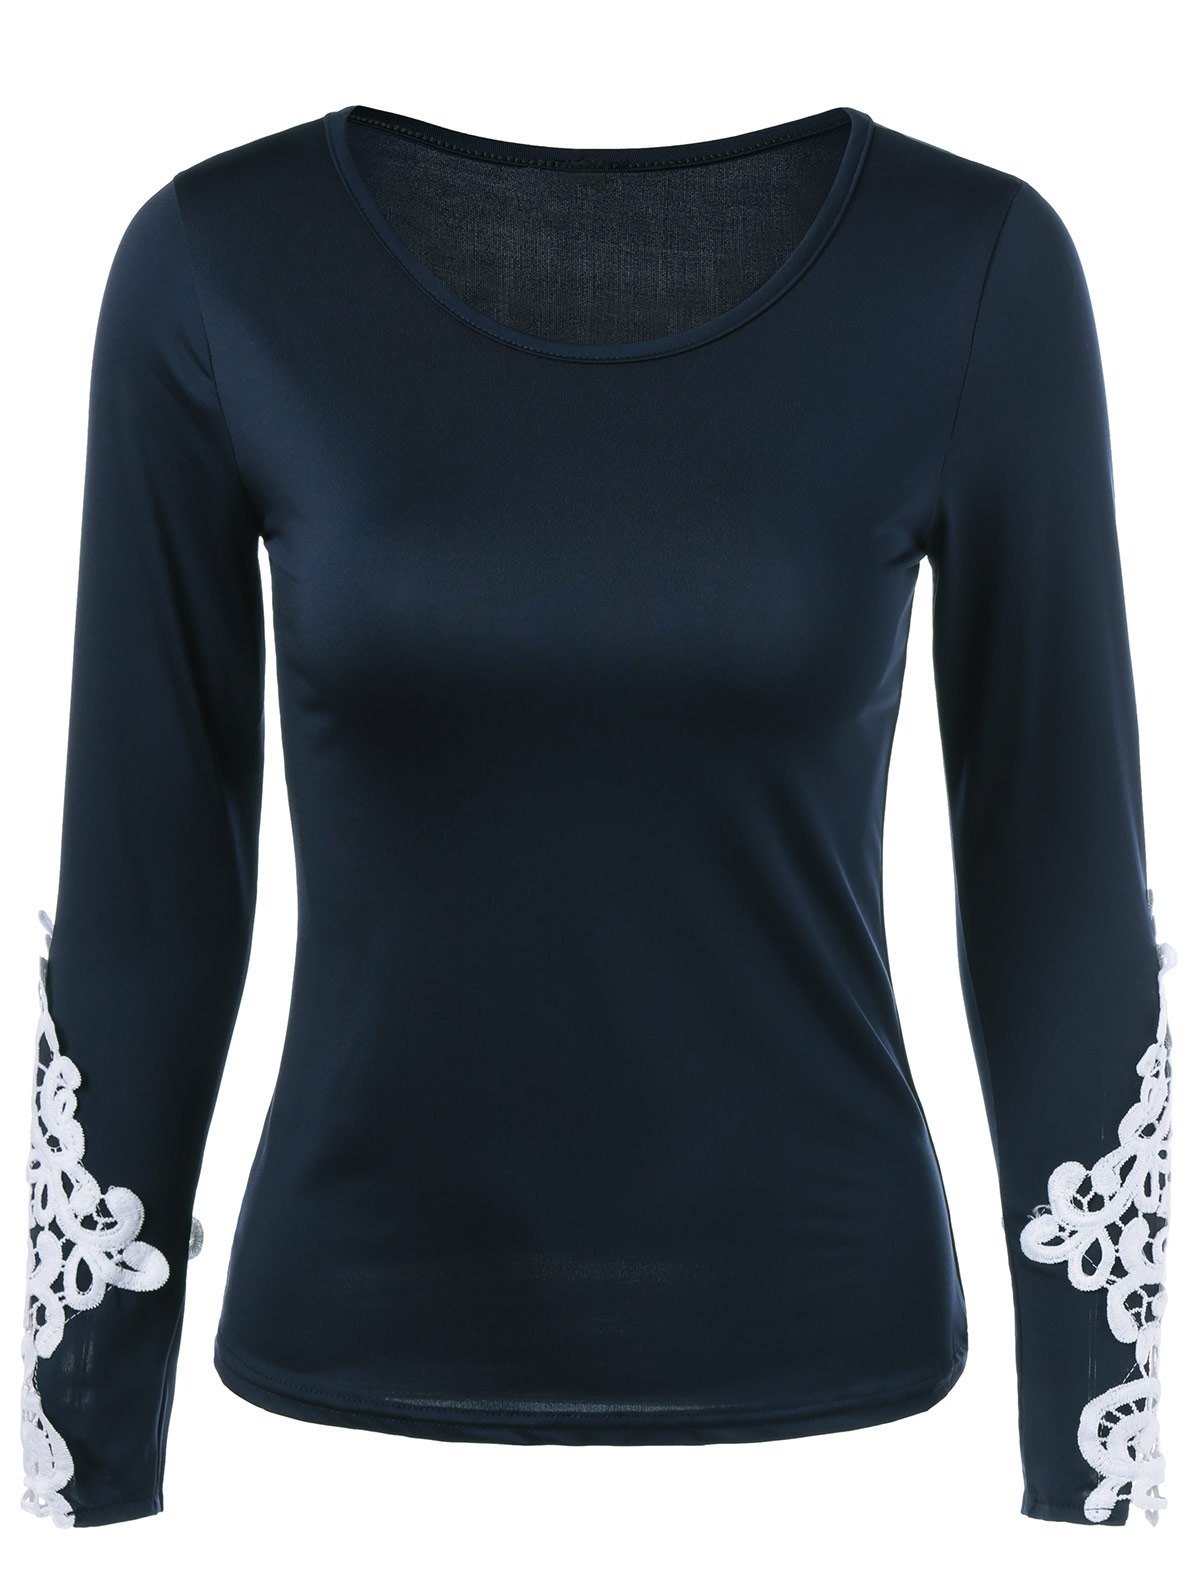 Lace Applique Slimming T-Shirt - PURPLISH BLUE S